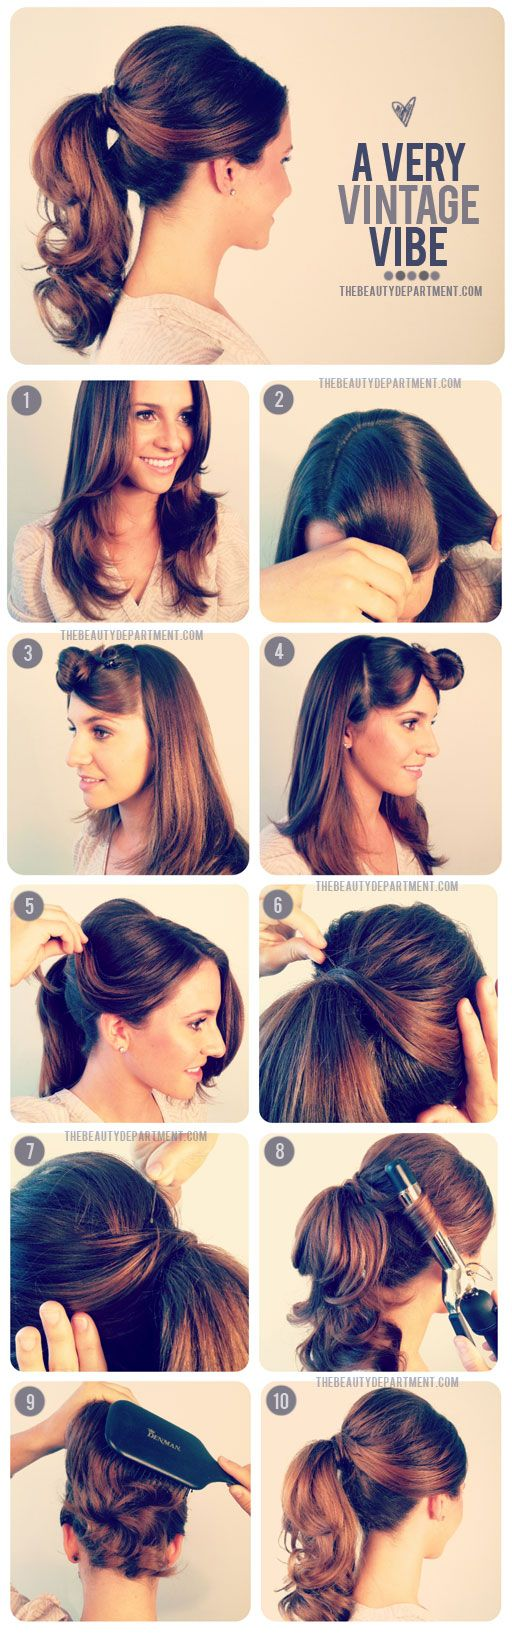 Old fashioned pony tail swing dancers perfectlypaired hair